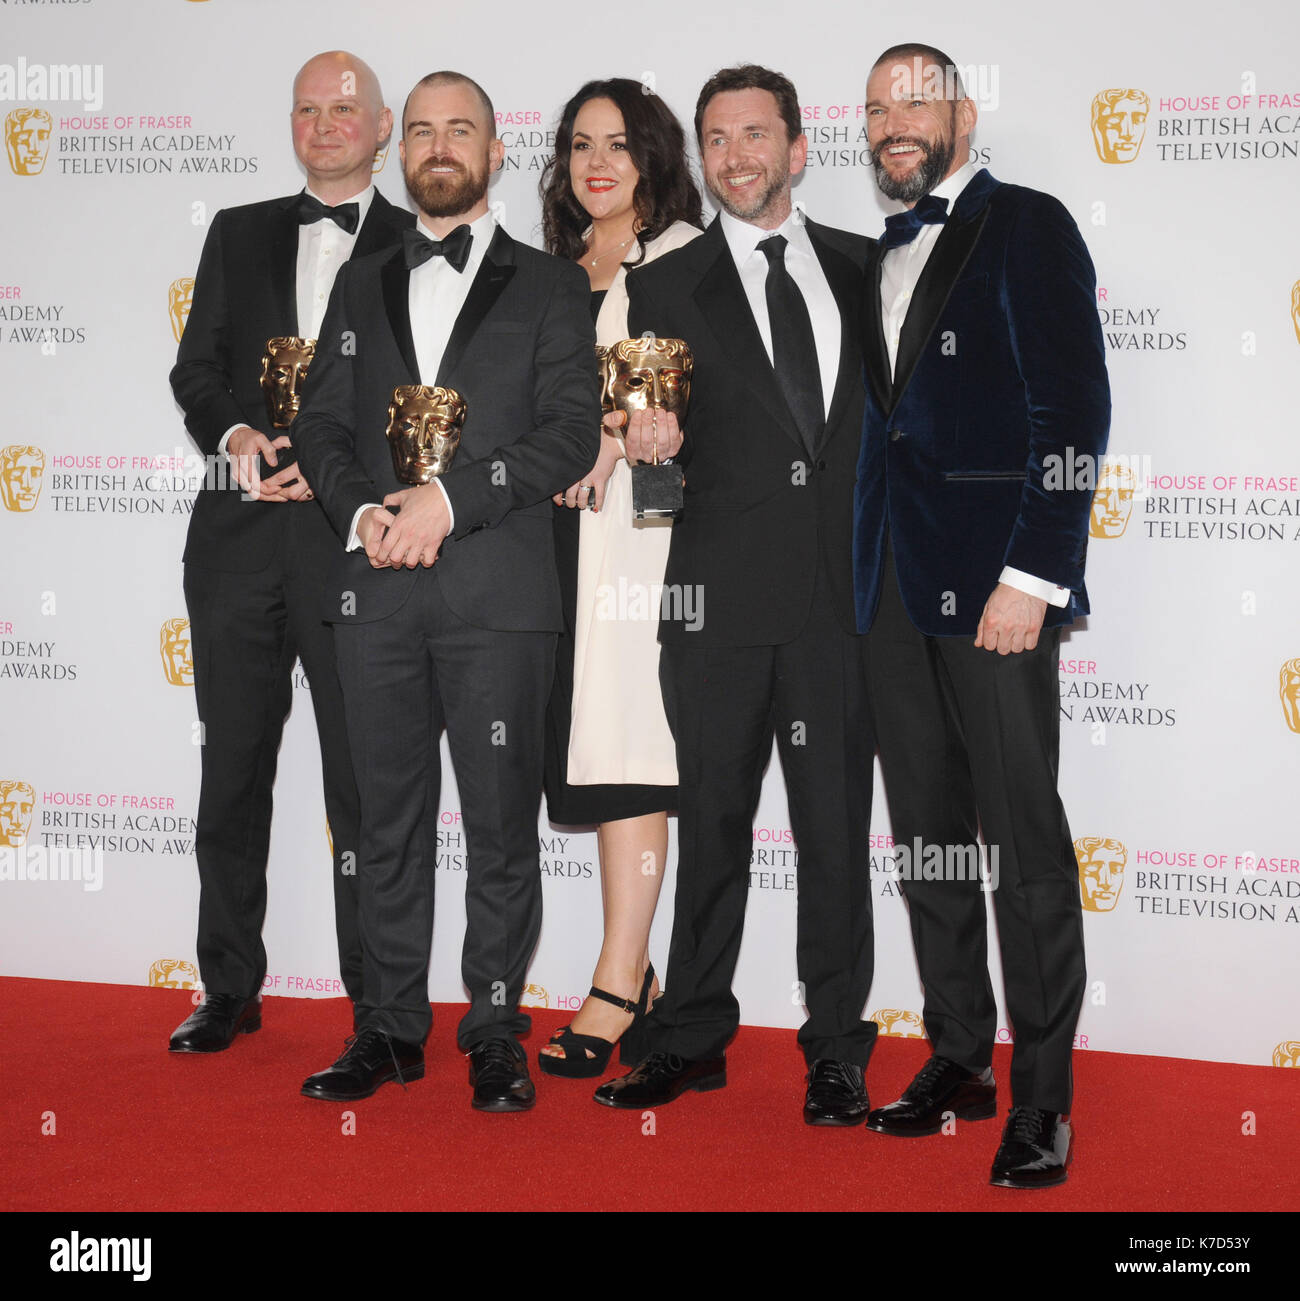 Photo Must Be Credited ©Kate Green/Alpha Press 079965 08/05/2016 Reality & Constructed Factual, First Dates , Martin Conway, Adam Chapman, Nicola Lloyd, Rob Clifford and Fred Sirieix at the House of Fraser British Academy Television Awards Bafta Pressroom held at the Royal Festival Hall in London - Stock Image